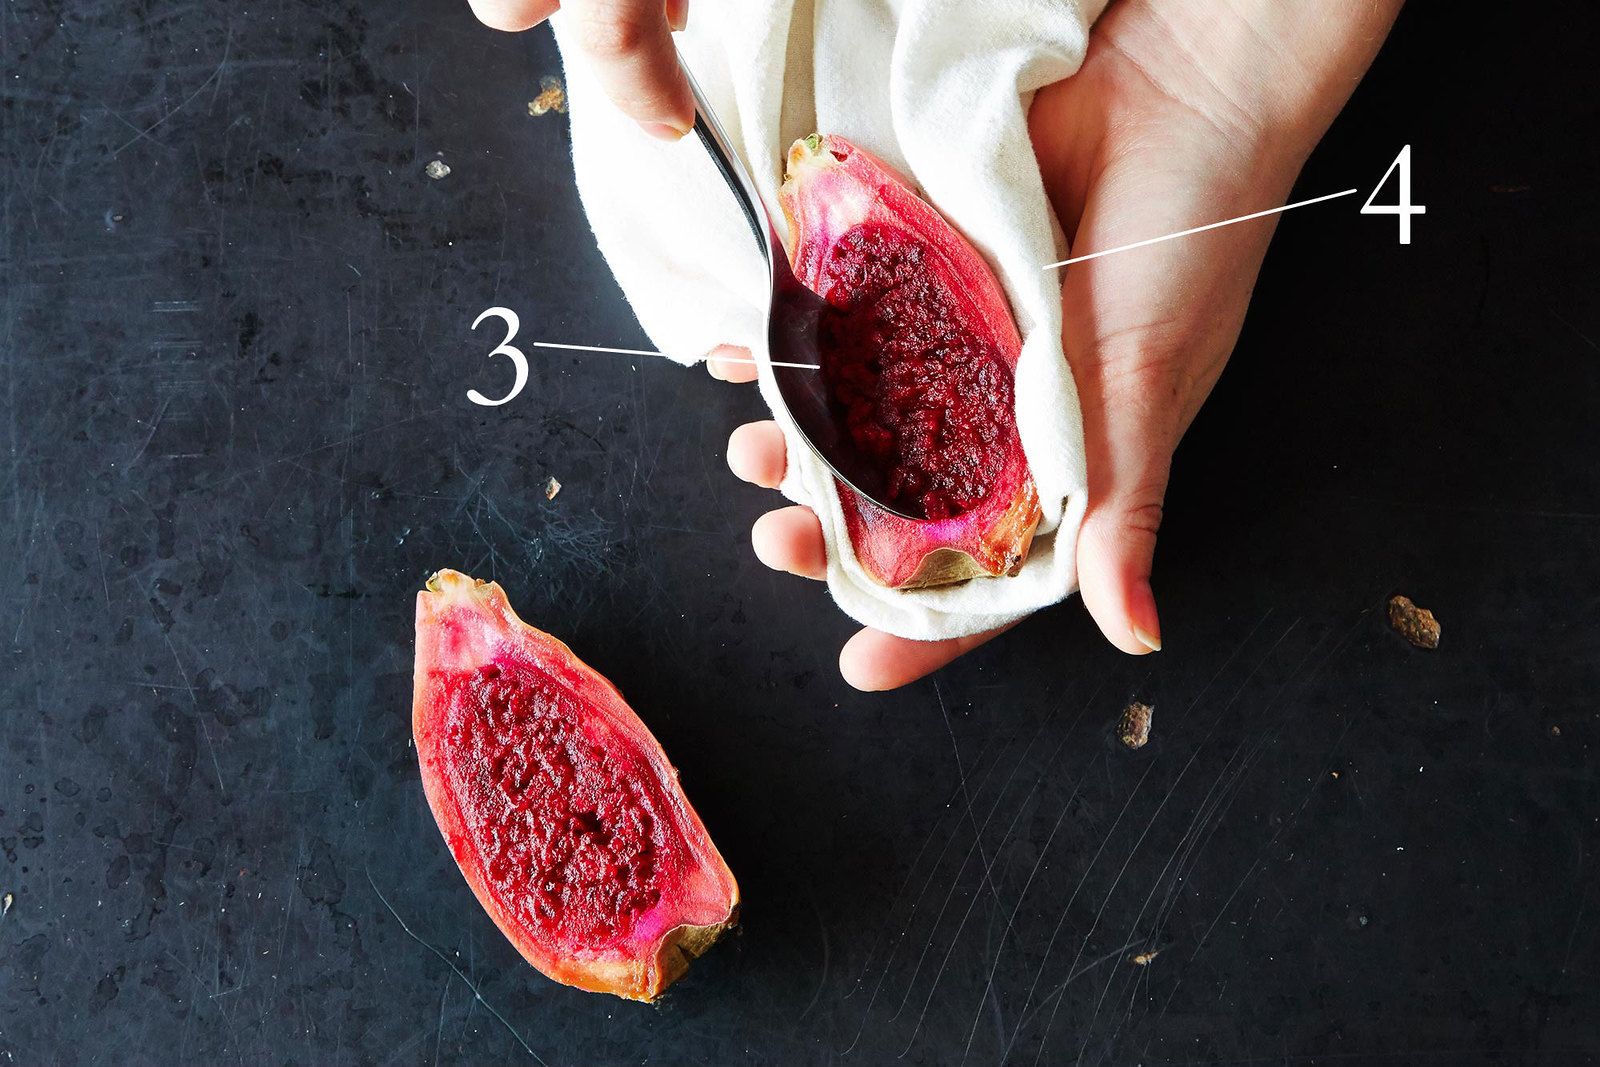 Cactus Pears and 10 Ways to Use Them, from Food52